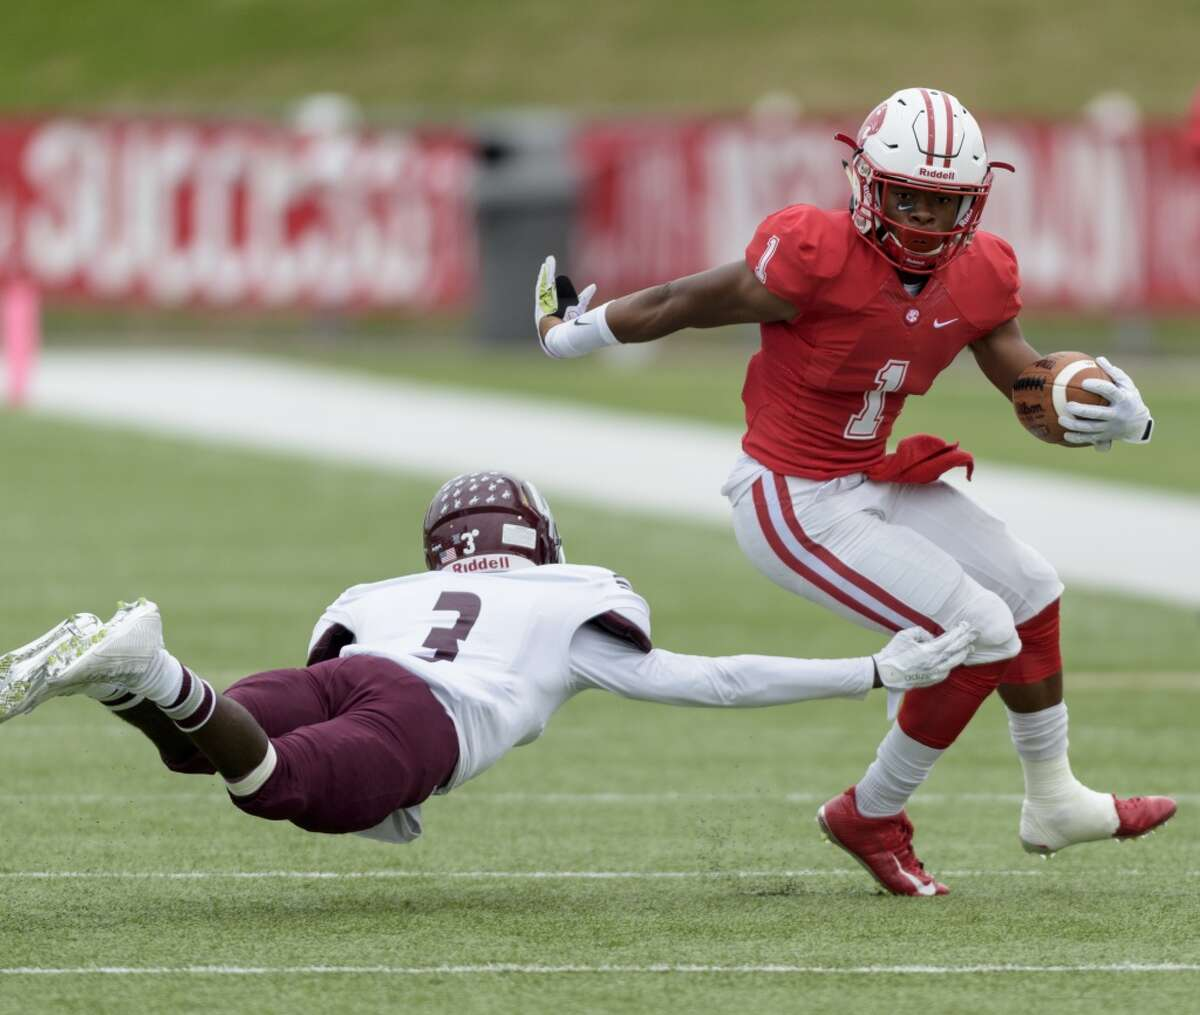 Tony Mullins (1) of the Katy Tigers breaks the tackle of Reggie Tati (3) of the Cinco Ranch Cougars in the first half of a high school football game on Saturday, November 7, 2015 at Rhodes Stadium.